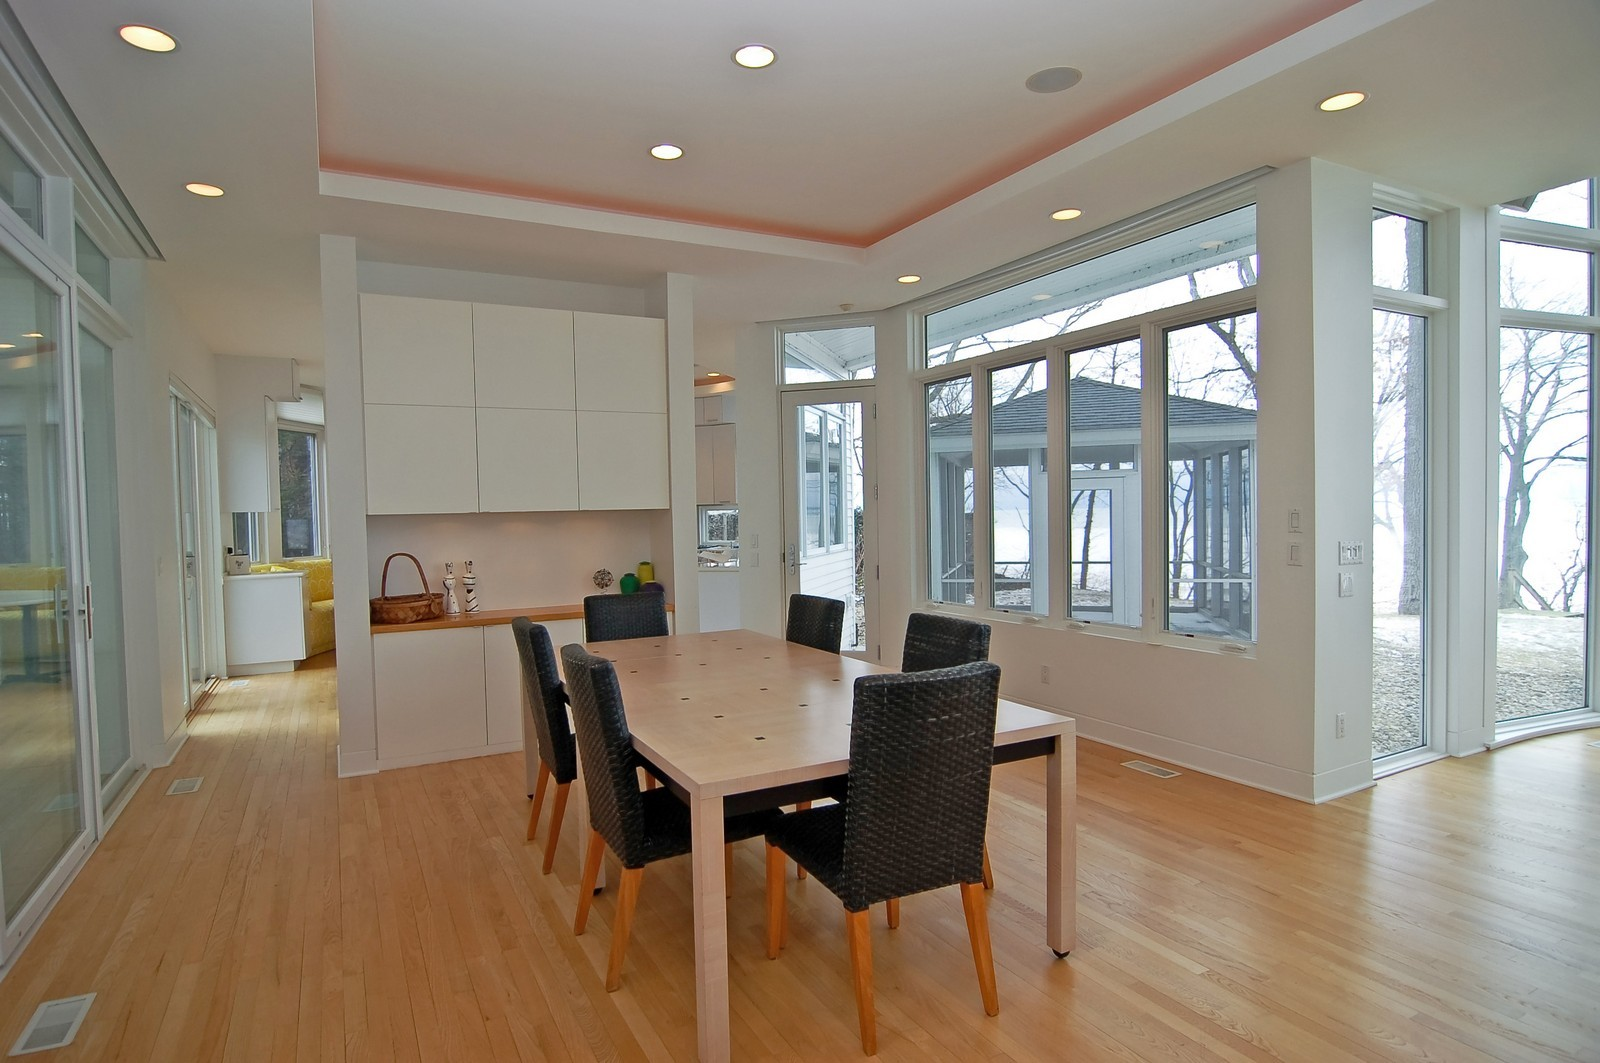 Real Estate Photography - 15930 Lake Ave, Union Pier, MI, 49129 - Dining Room